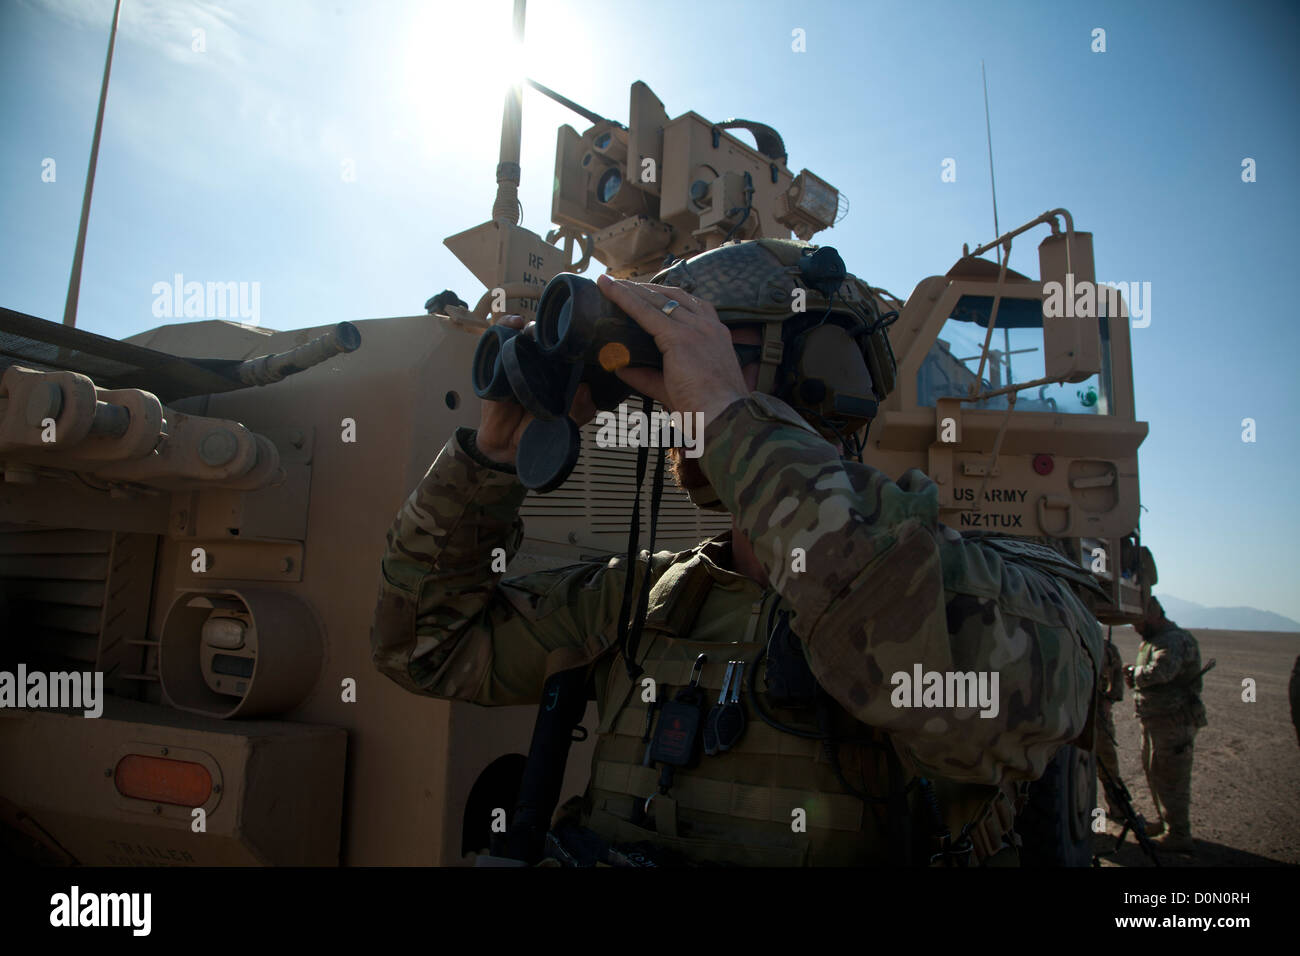 A coalition force member maintains security during village stability operations in Farah province, Afghanistan, Stock Photo